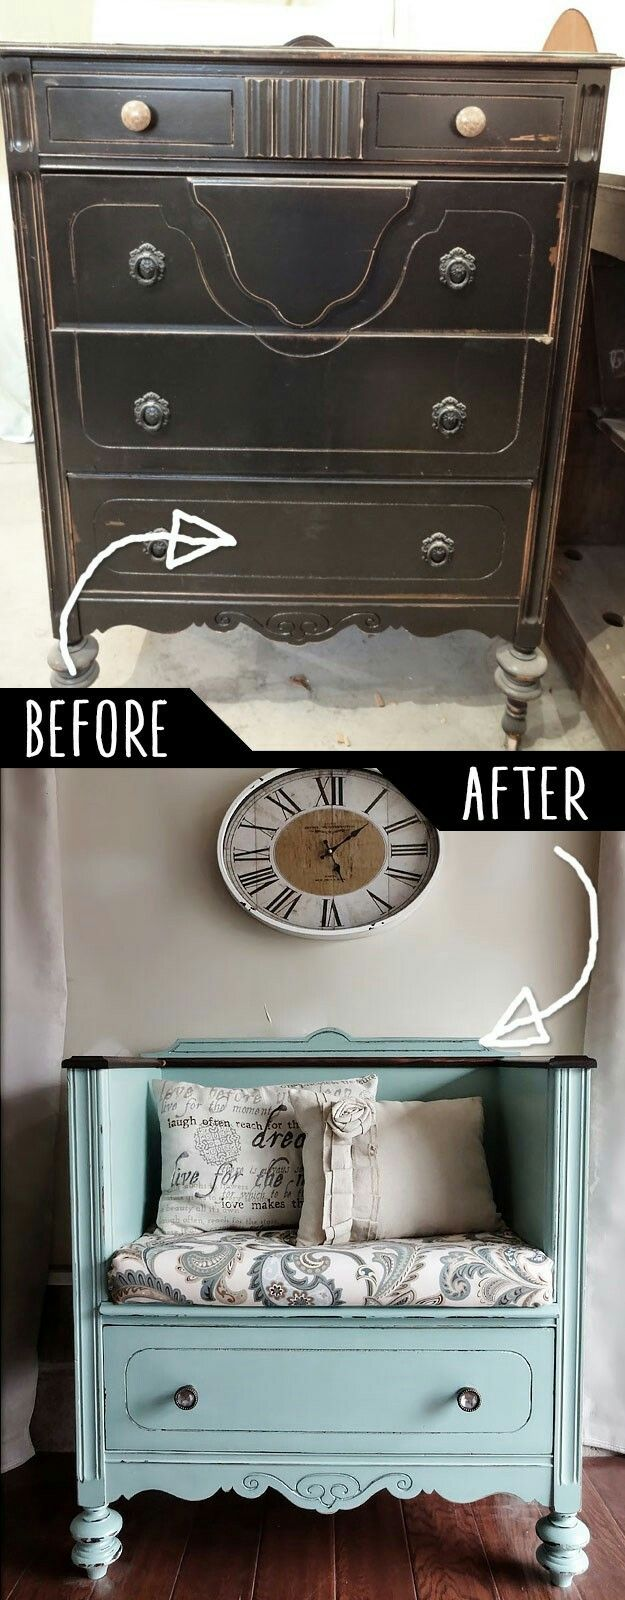 Old dresser turned into a bench